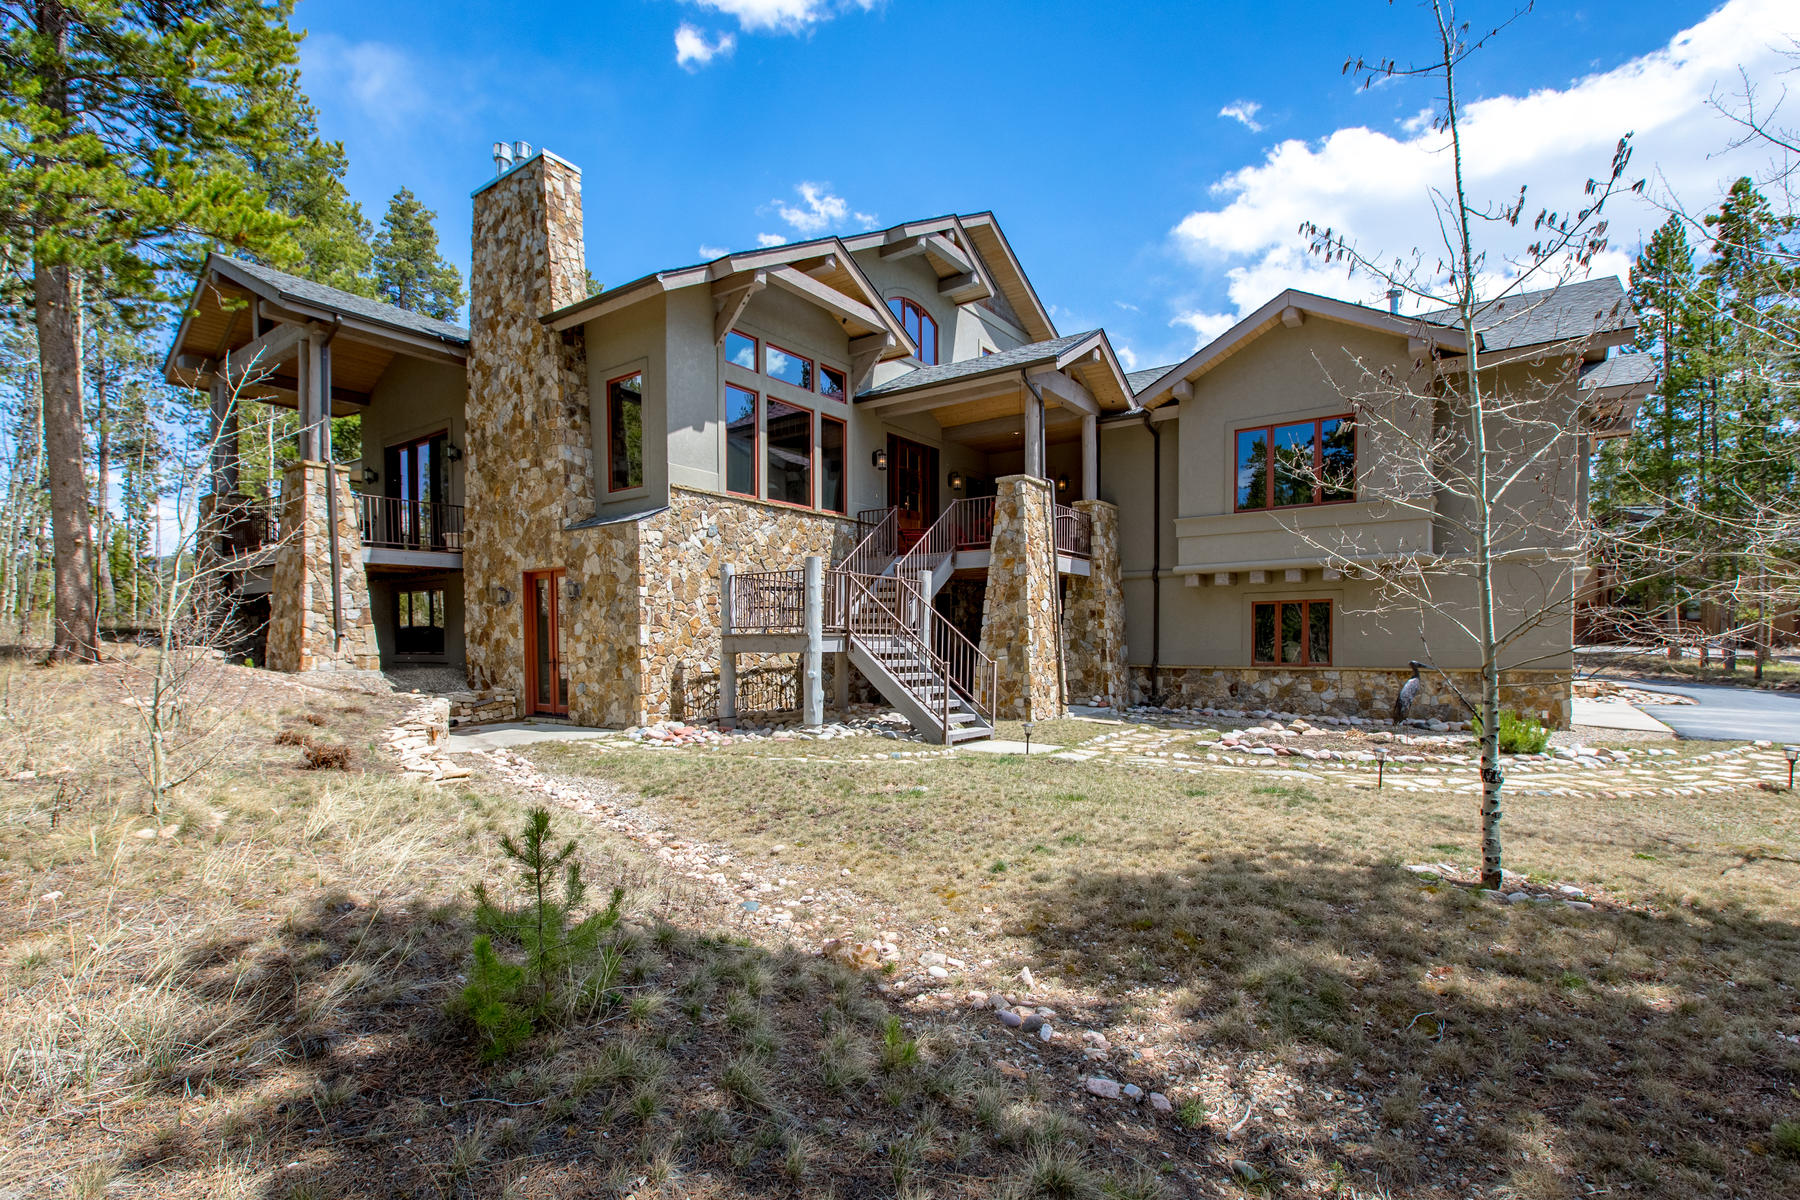 Single Family Home for Active at Stunning custom home located in Sunset Ridge! 148 GCR 8307/Silver Lining Cir Tabernash, Colorado 80478 United States